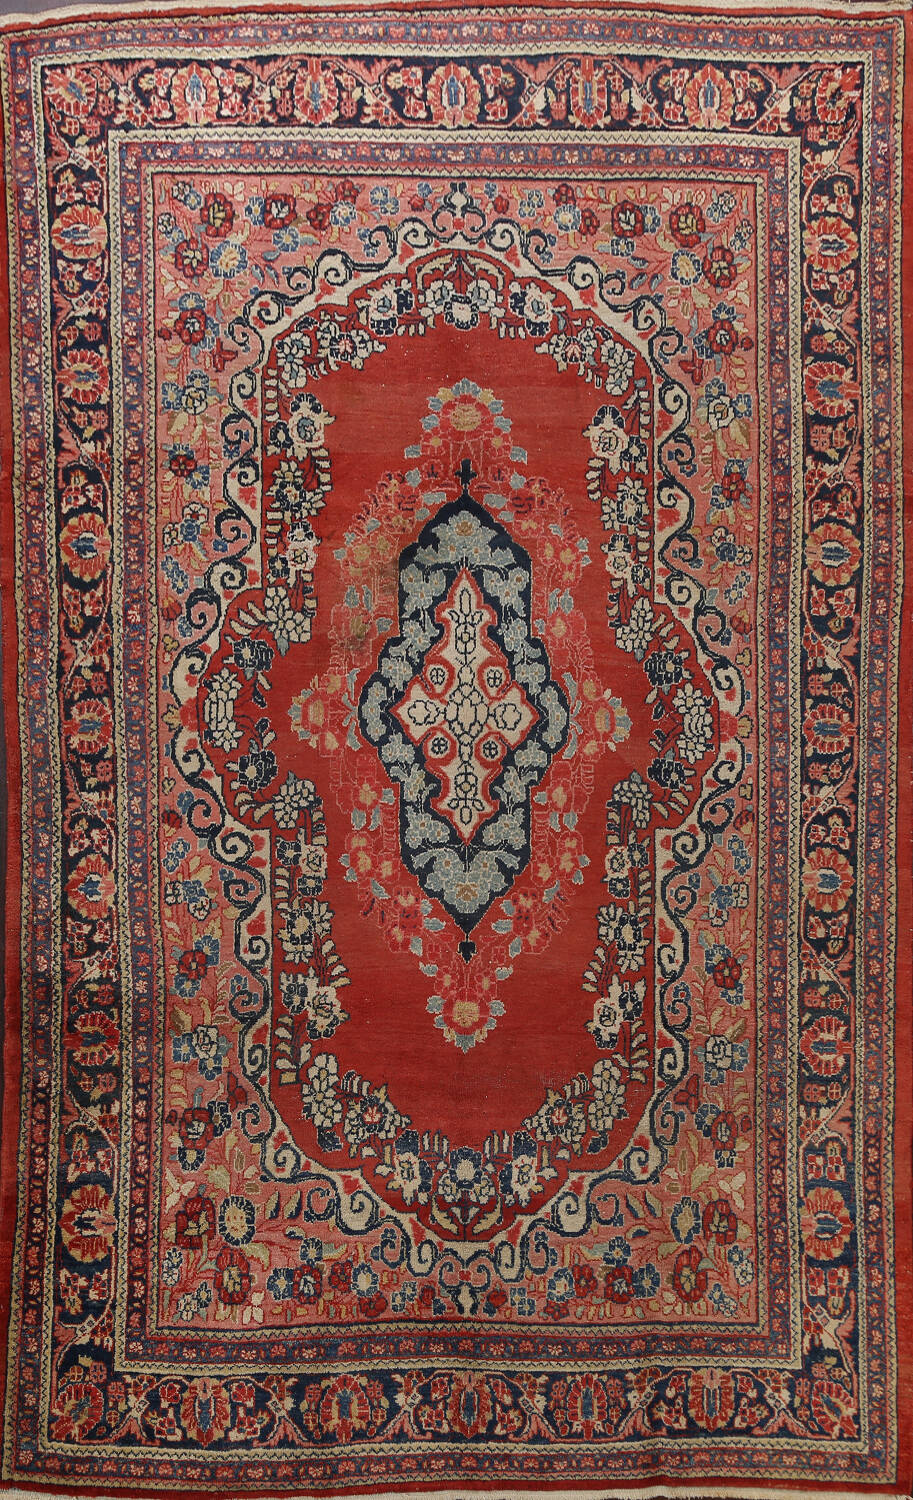 Antique Floral Mahal Persian Area Rug 8x11 image 1